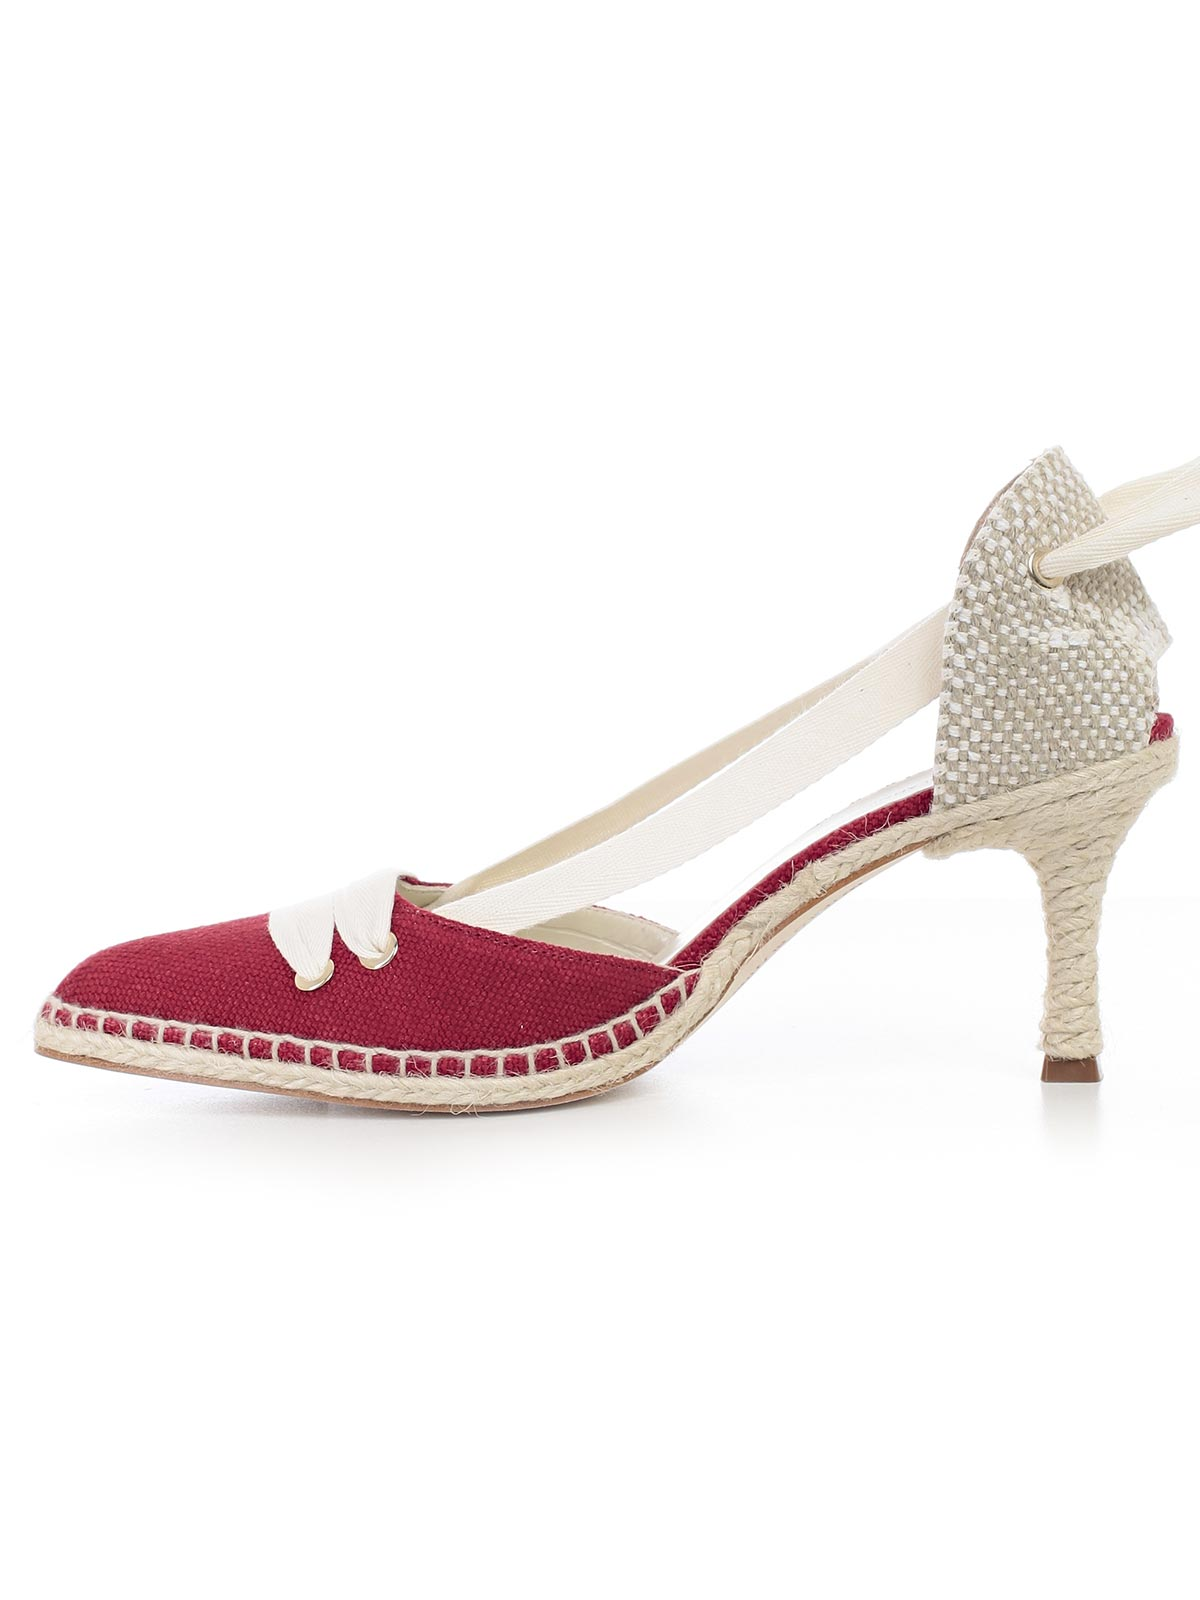 Picture of Castaner By Manolo Blahnik Shoes